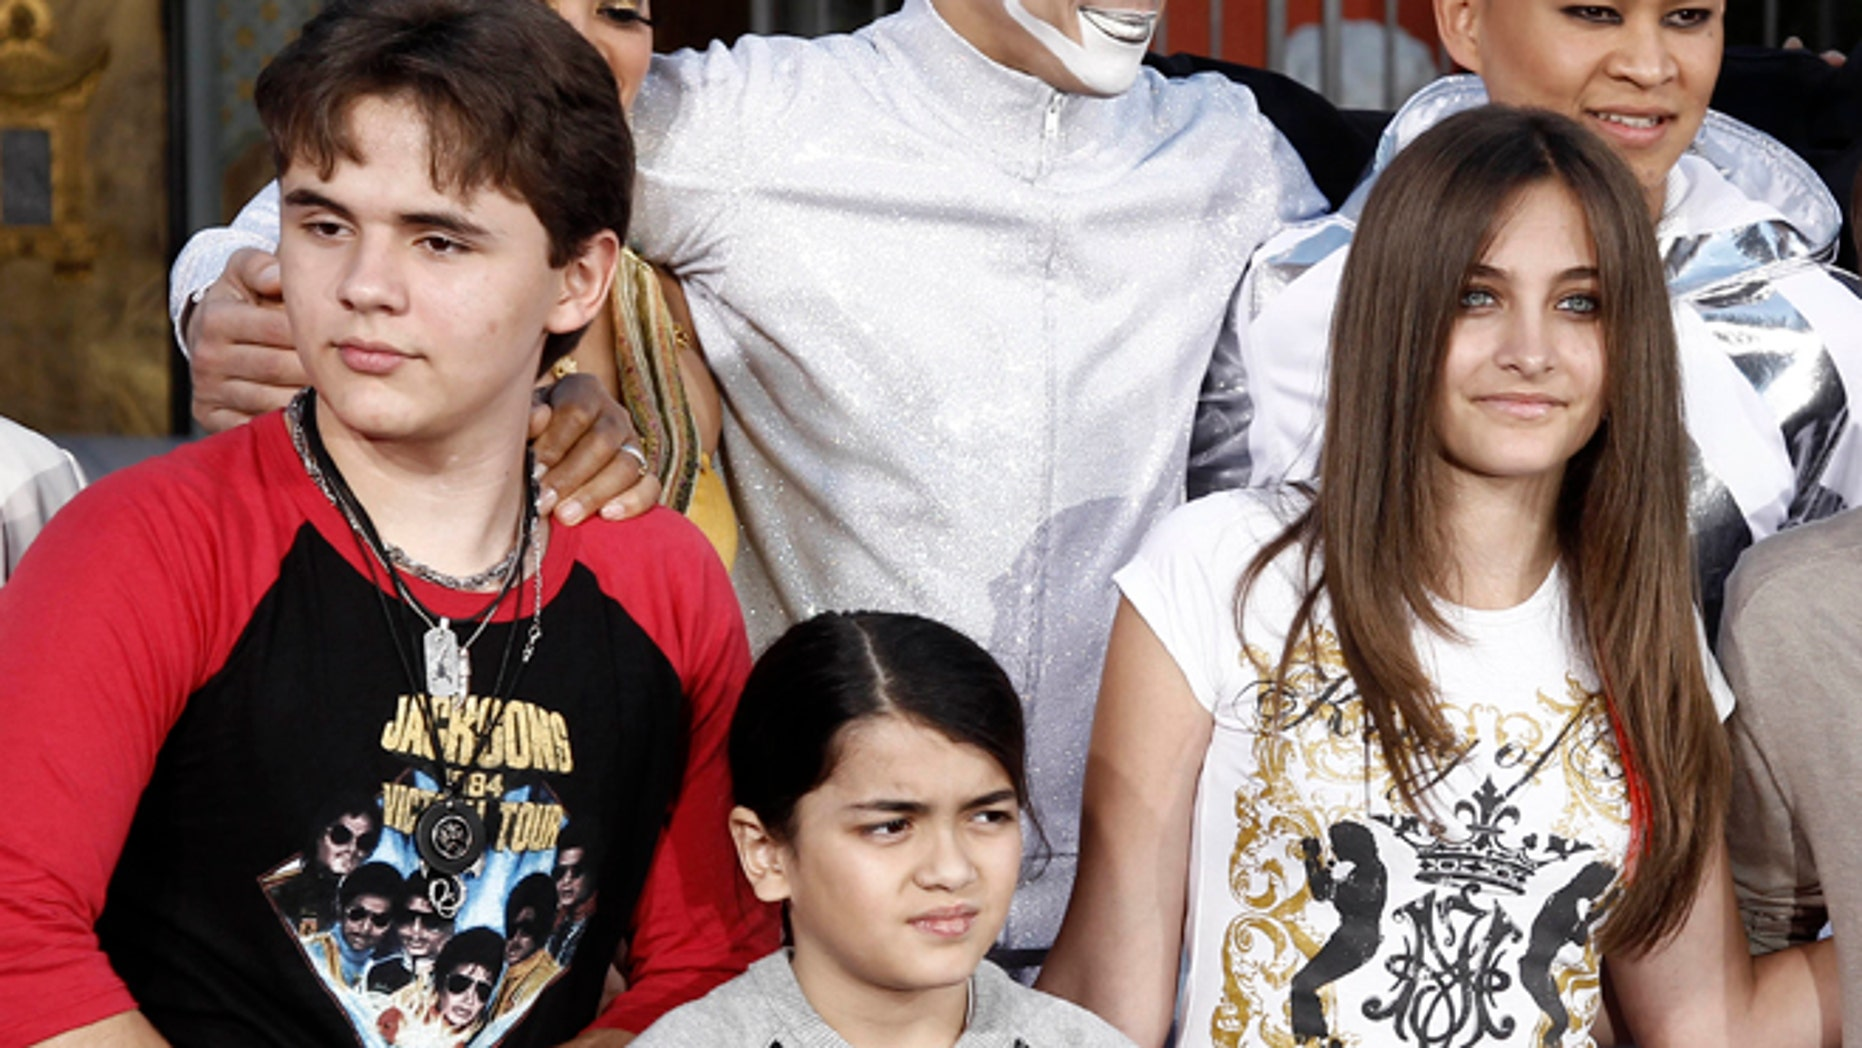 Jan. 26, 2012: This file photo shows, from left, Prince Jackson, Blanket Jackson and Paris Jackson after a hand and footprint ceremony honoring their father musician Michael Jackson in front of Grauman's Chinese Theatre in Los Angeles.